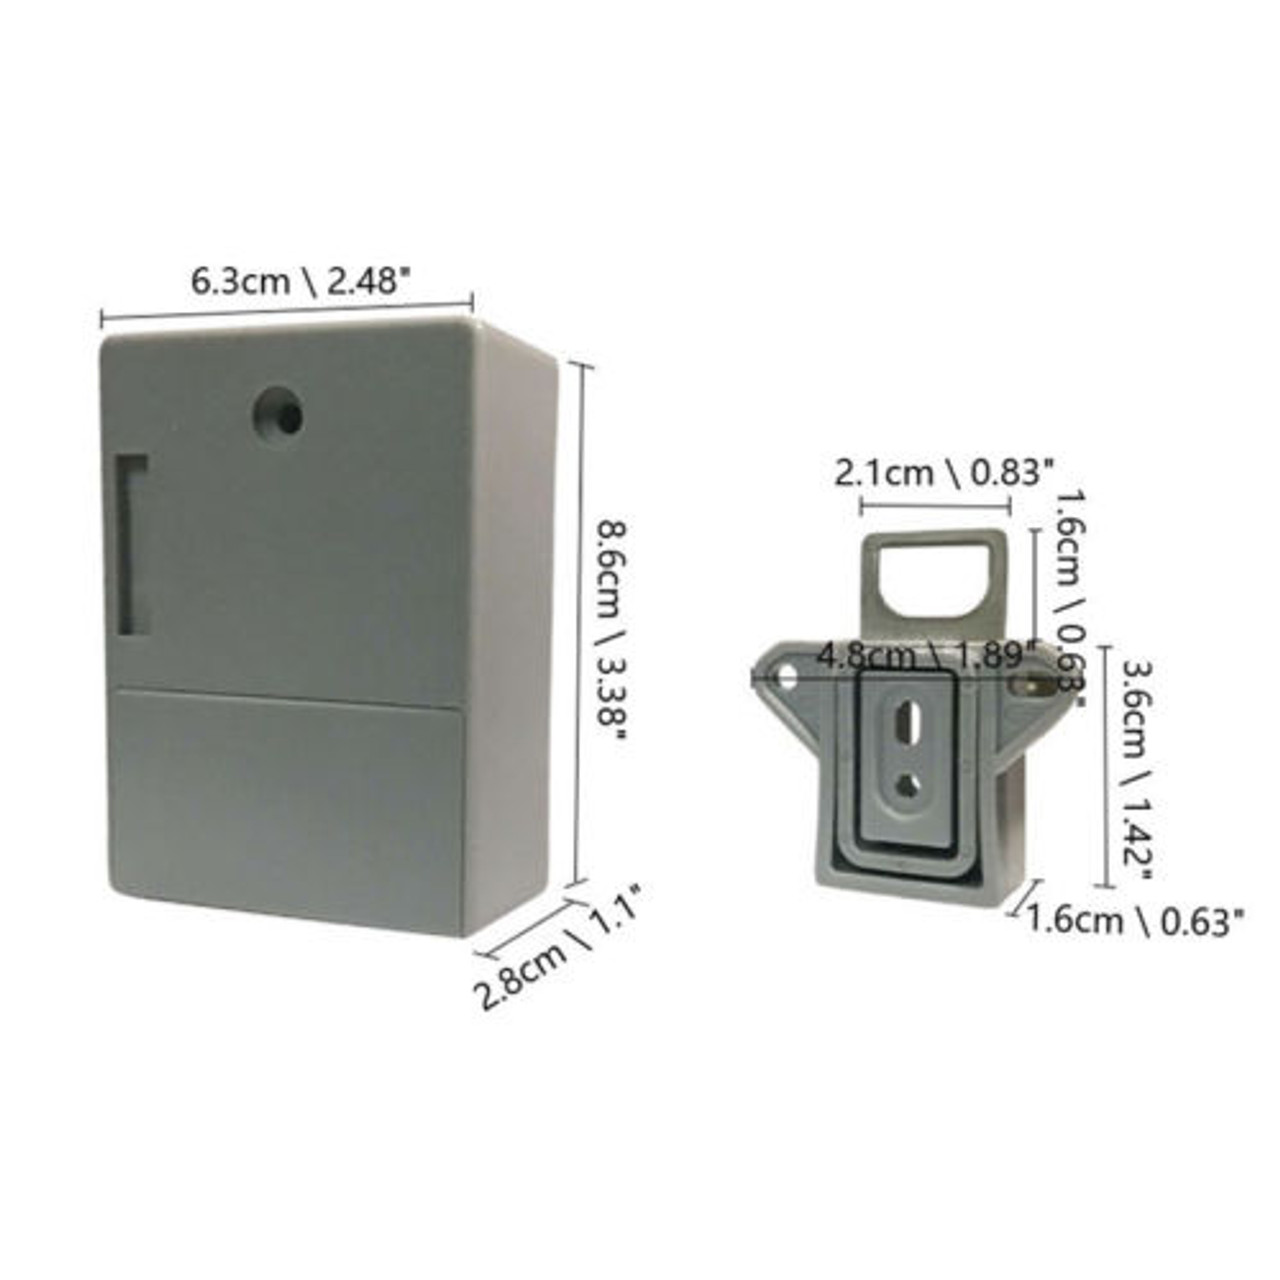 10 pcs of our Hidden RFID Cabinet Drawer Lock